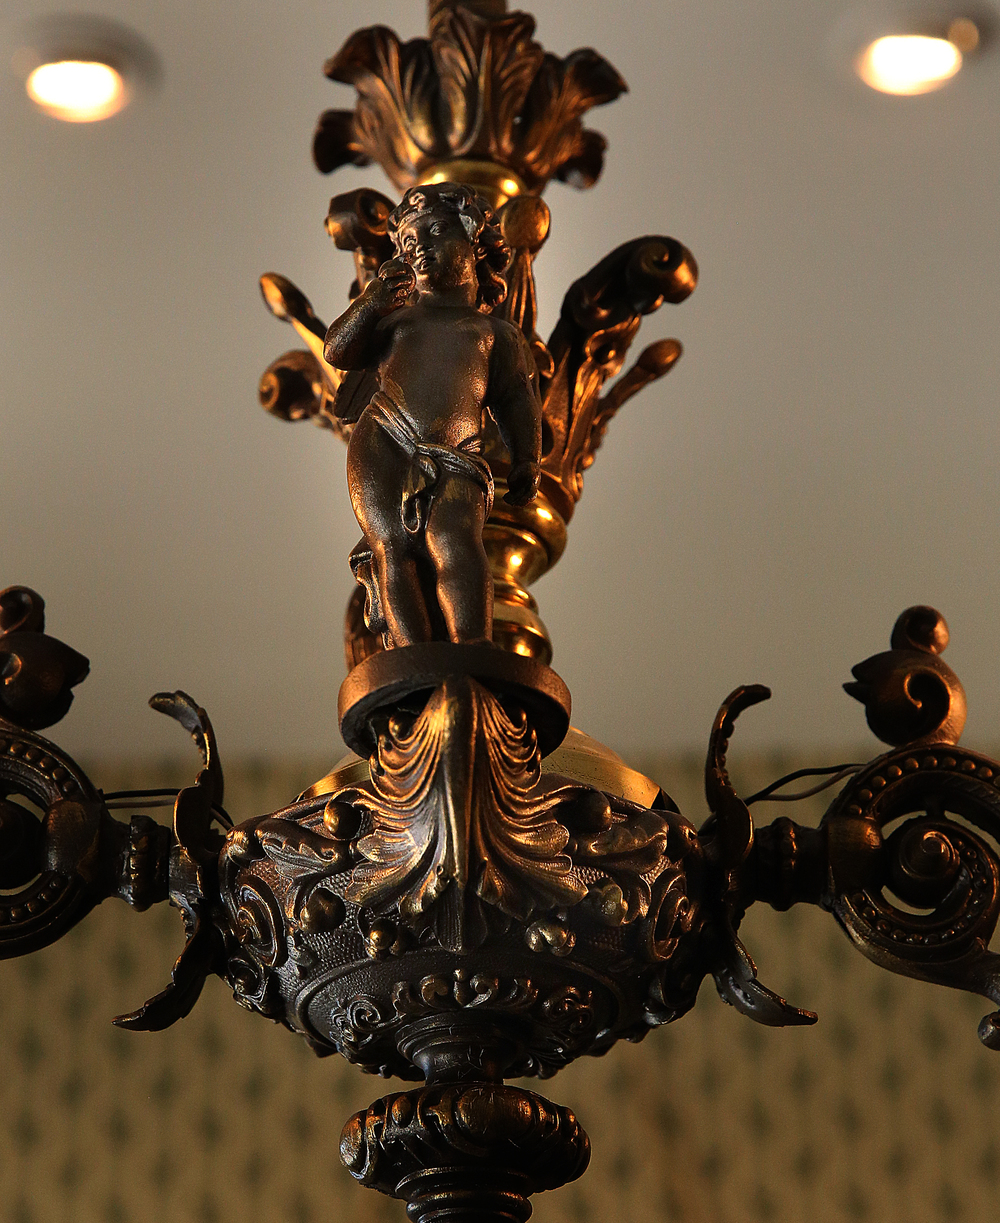 More than one cherub graces this 1850s era brass chandelier that hangs from the ceiling of the sitting room in the home.  David Spencer/The State Journal-Register